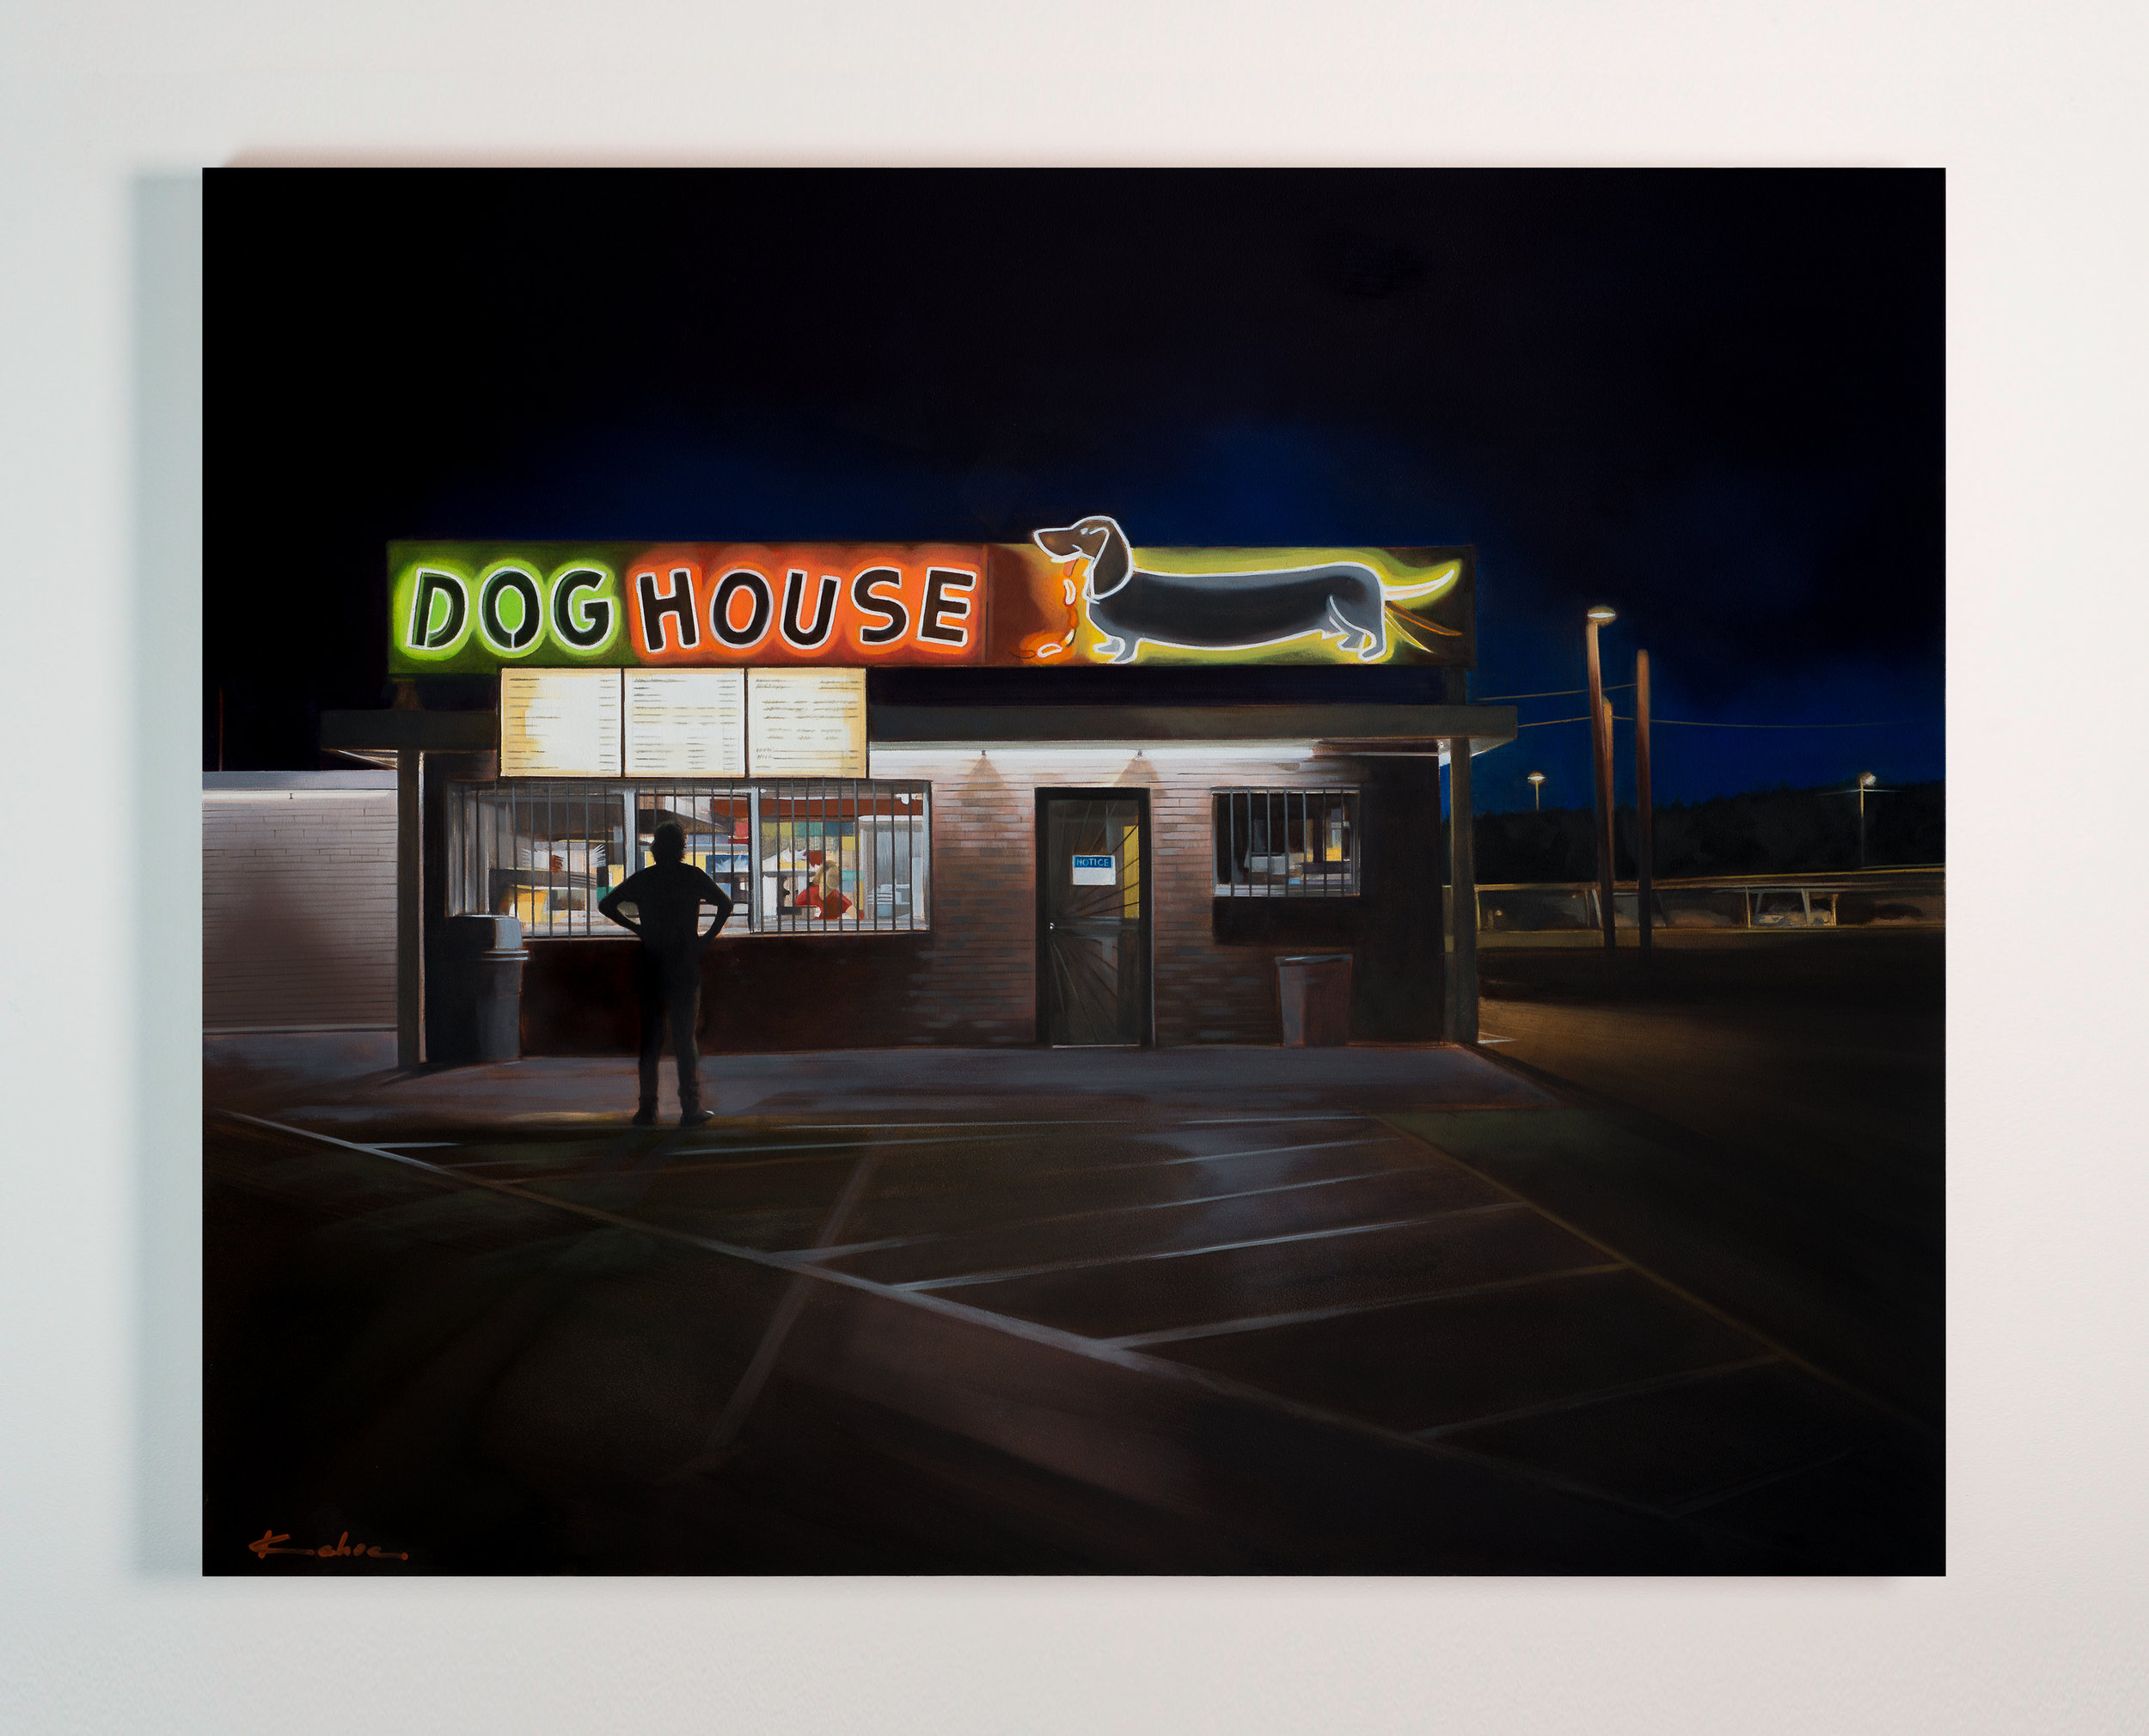 Title: DOG HOUSE  17 X 21, Oil on Board  SOLD